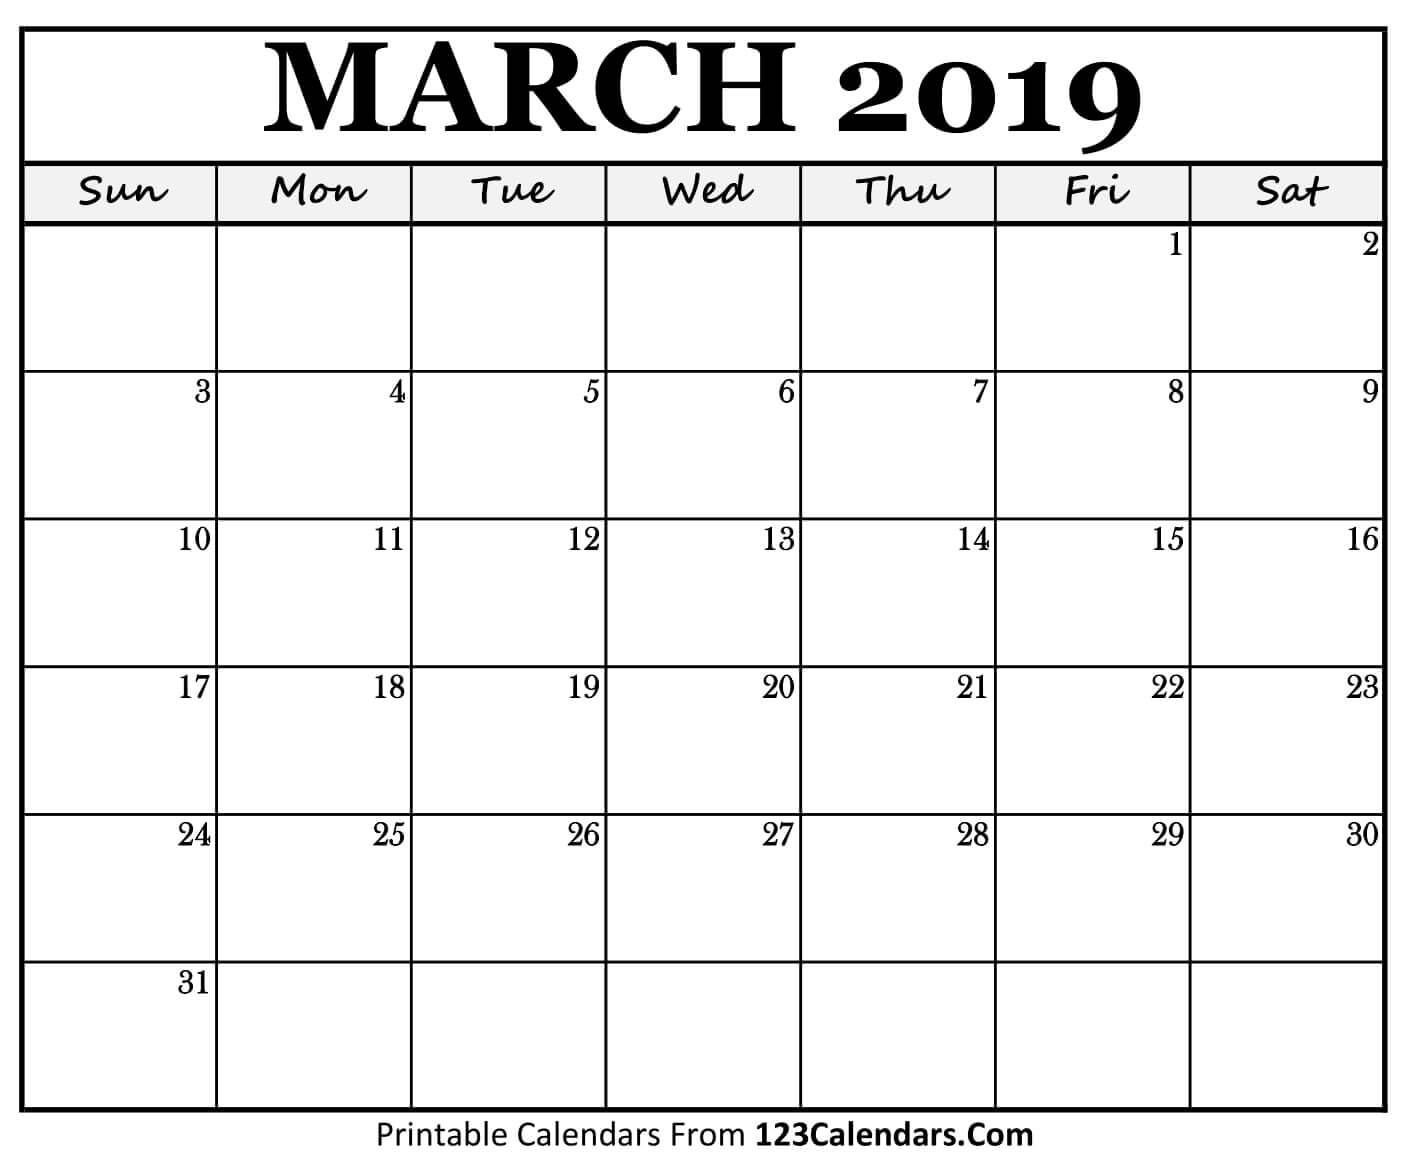 March Month Calendar 2019 Templates - Printable Calendar 2019| Blank with regard to Pretty Calendar Template Printable March